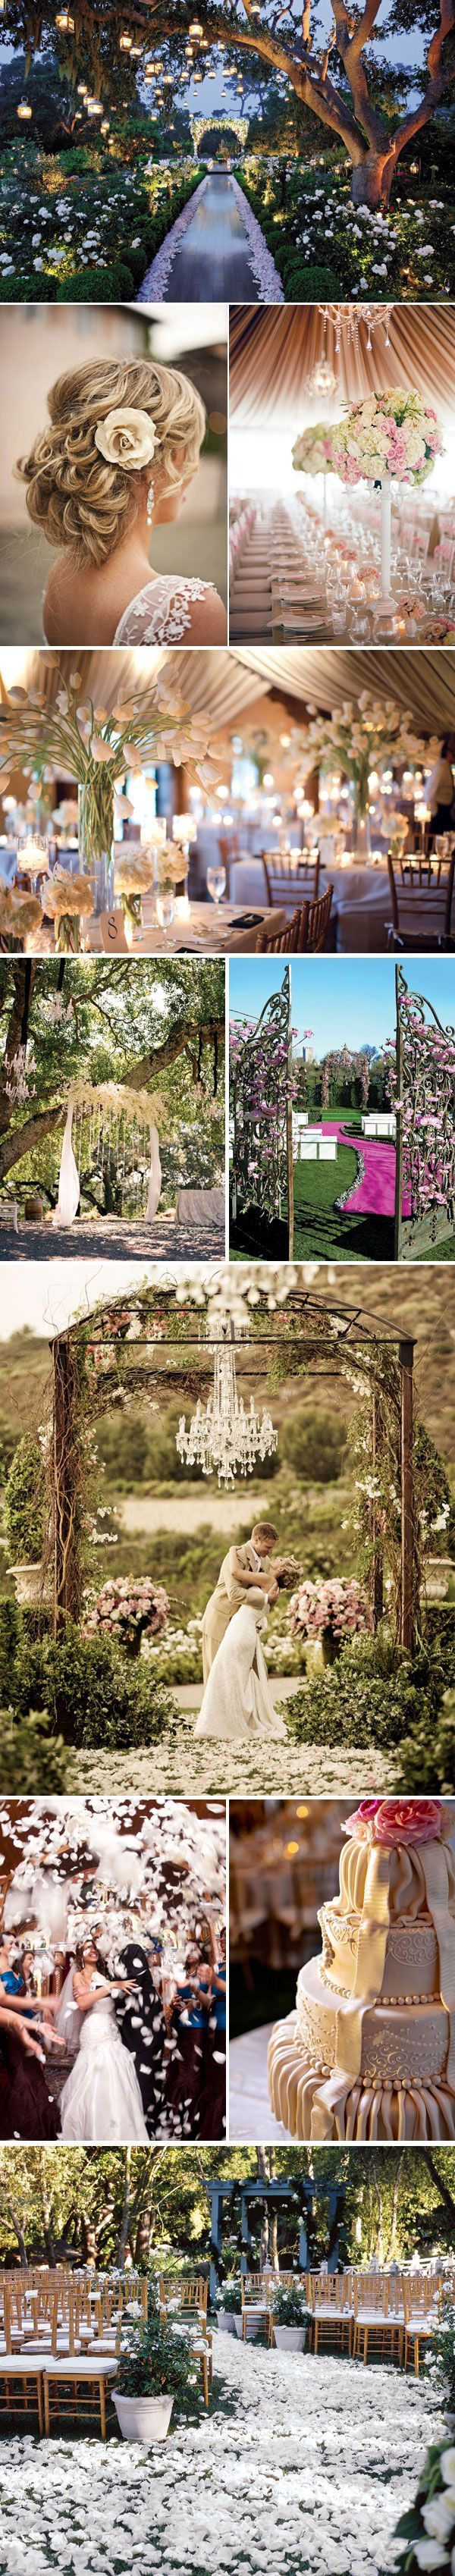 Not planning to get married but if I was going to ...it might look a little like this ... #enchantedforest#glamwedding